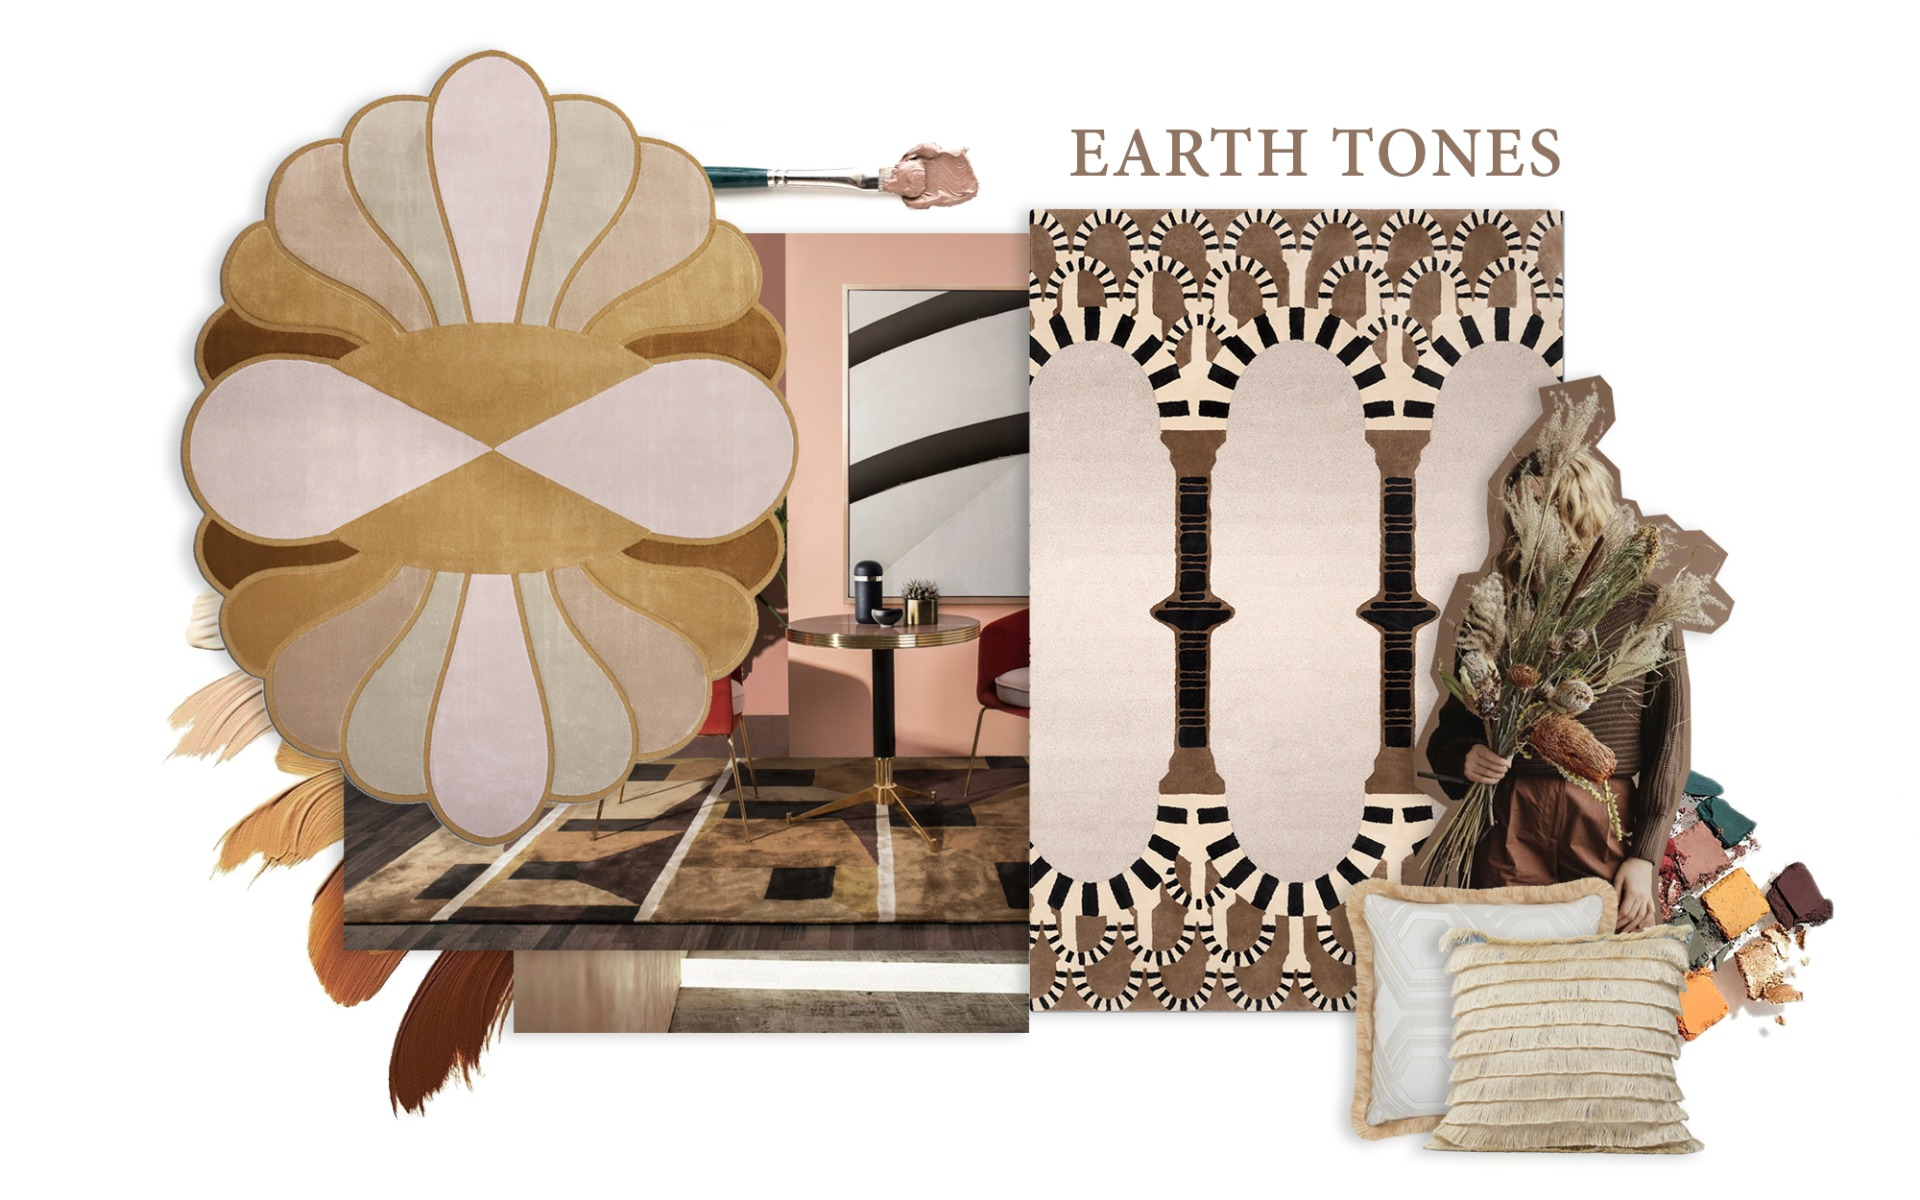 Earth Tones - Trends 2019